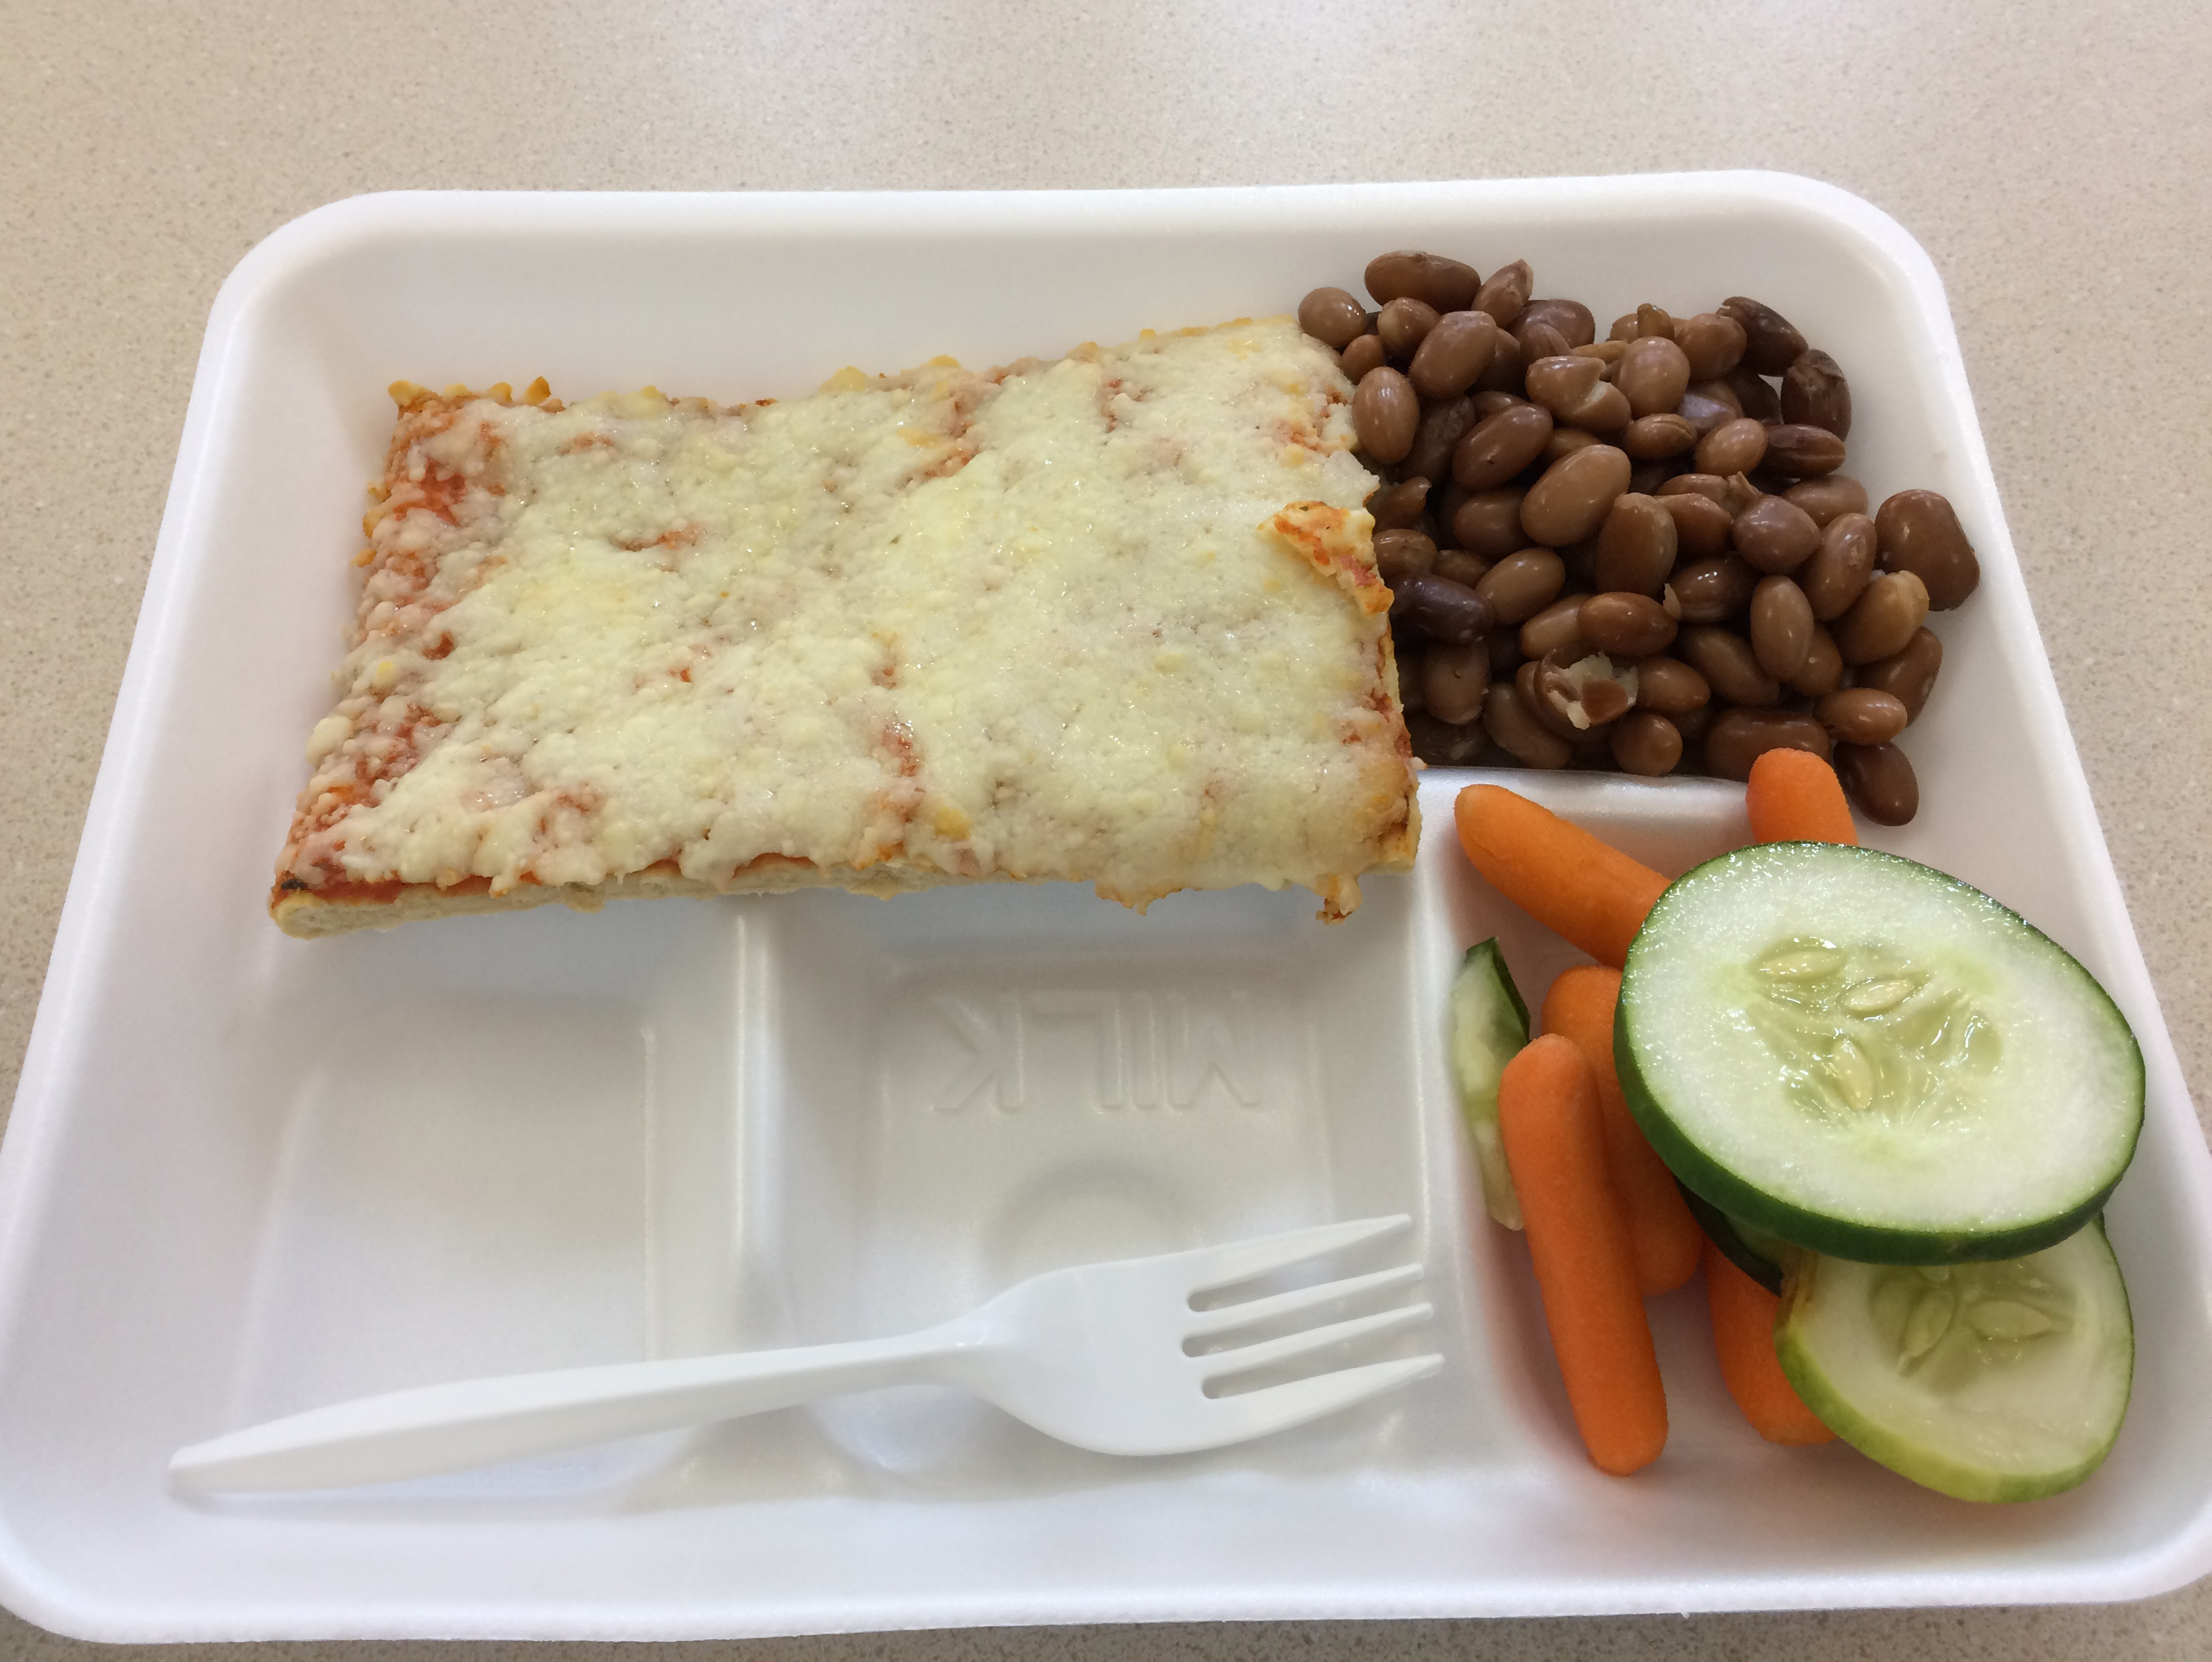 This was my lunch at Sidney's school.